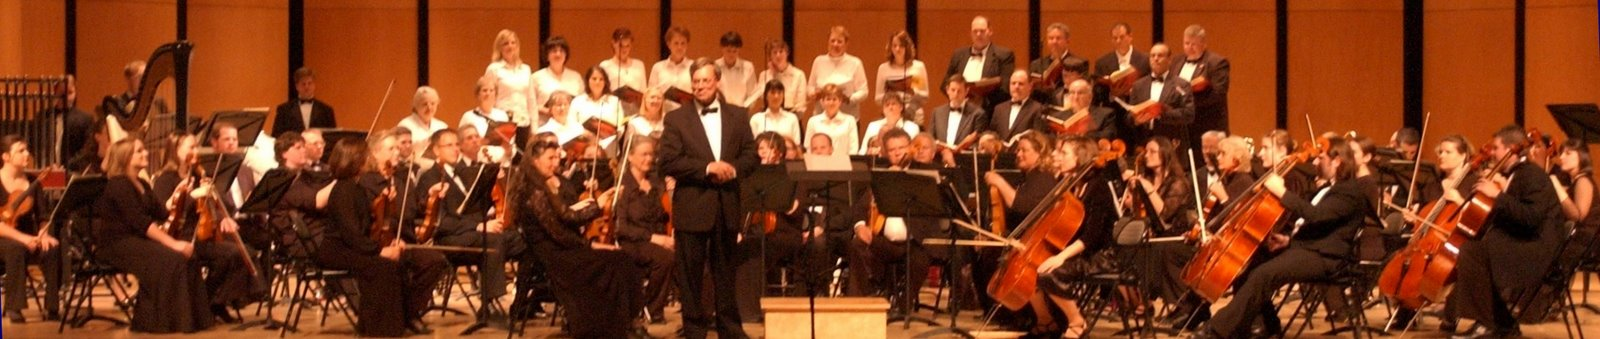 Idaho Choral Symphony Orchestra and the Alleluia Chorus